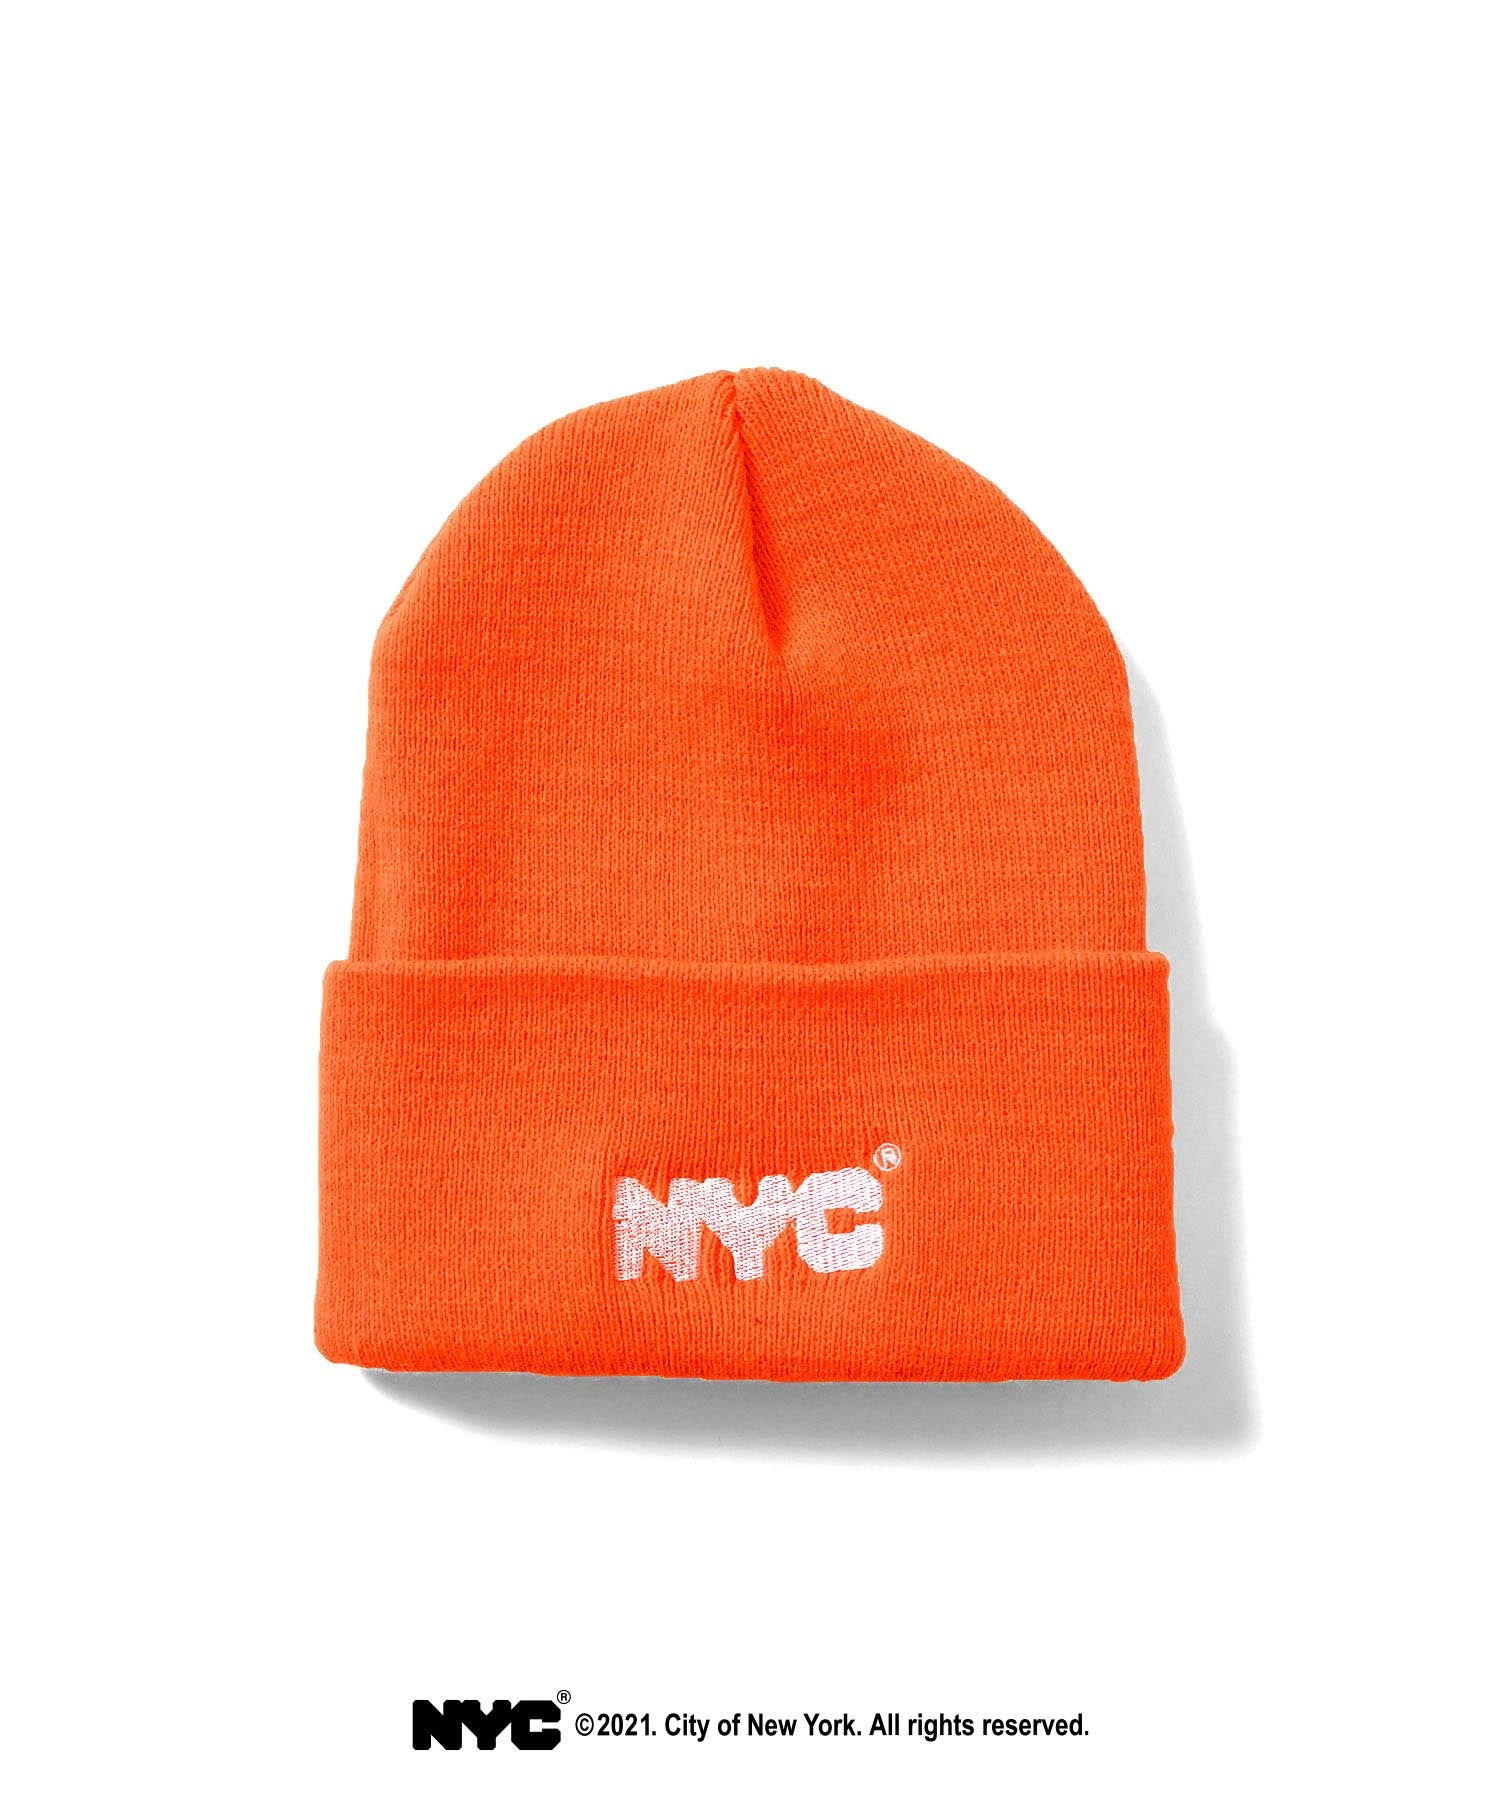 LFYT X DSNY COMMUNITY SERVICES LONG BEANIE LS211404 ORANGE